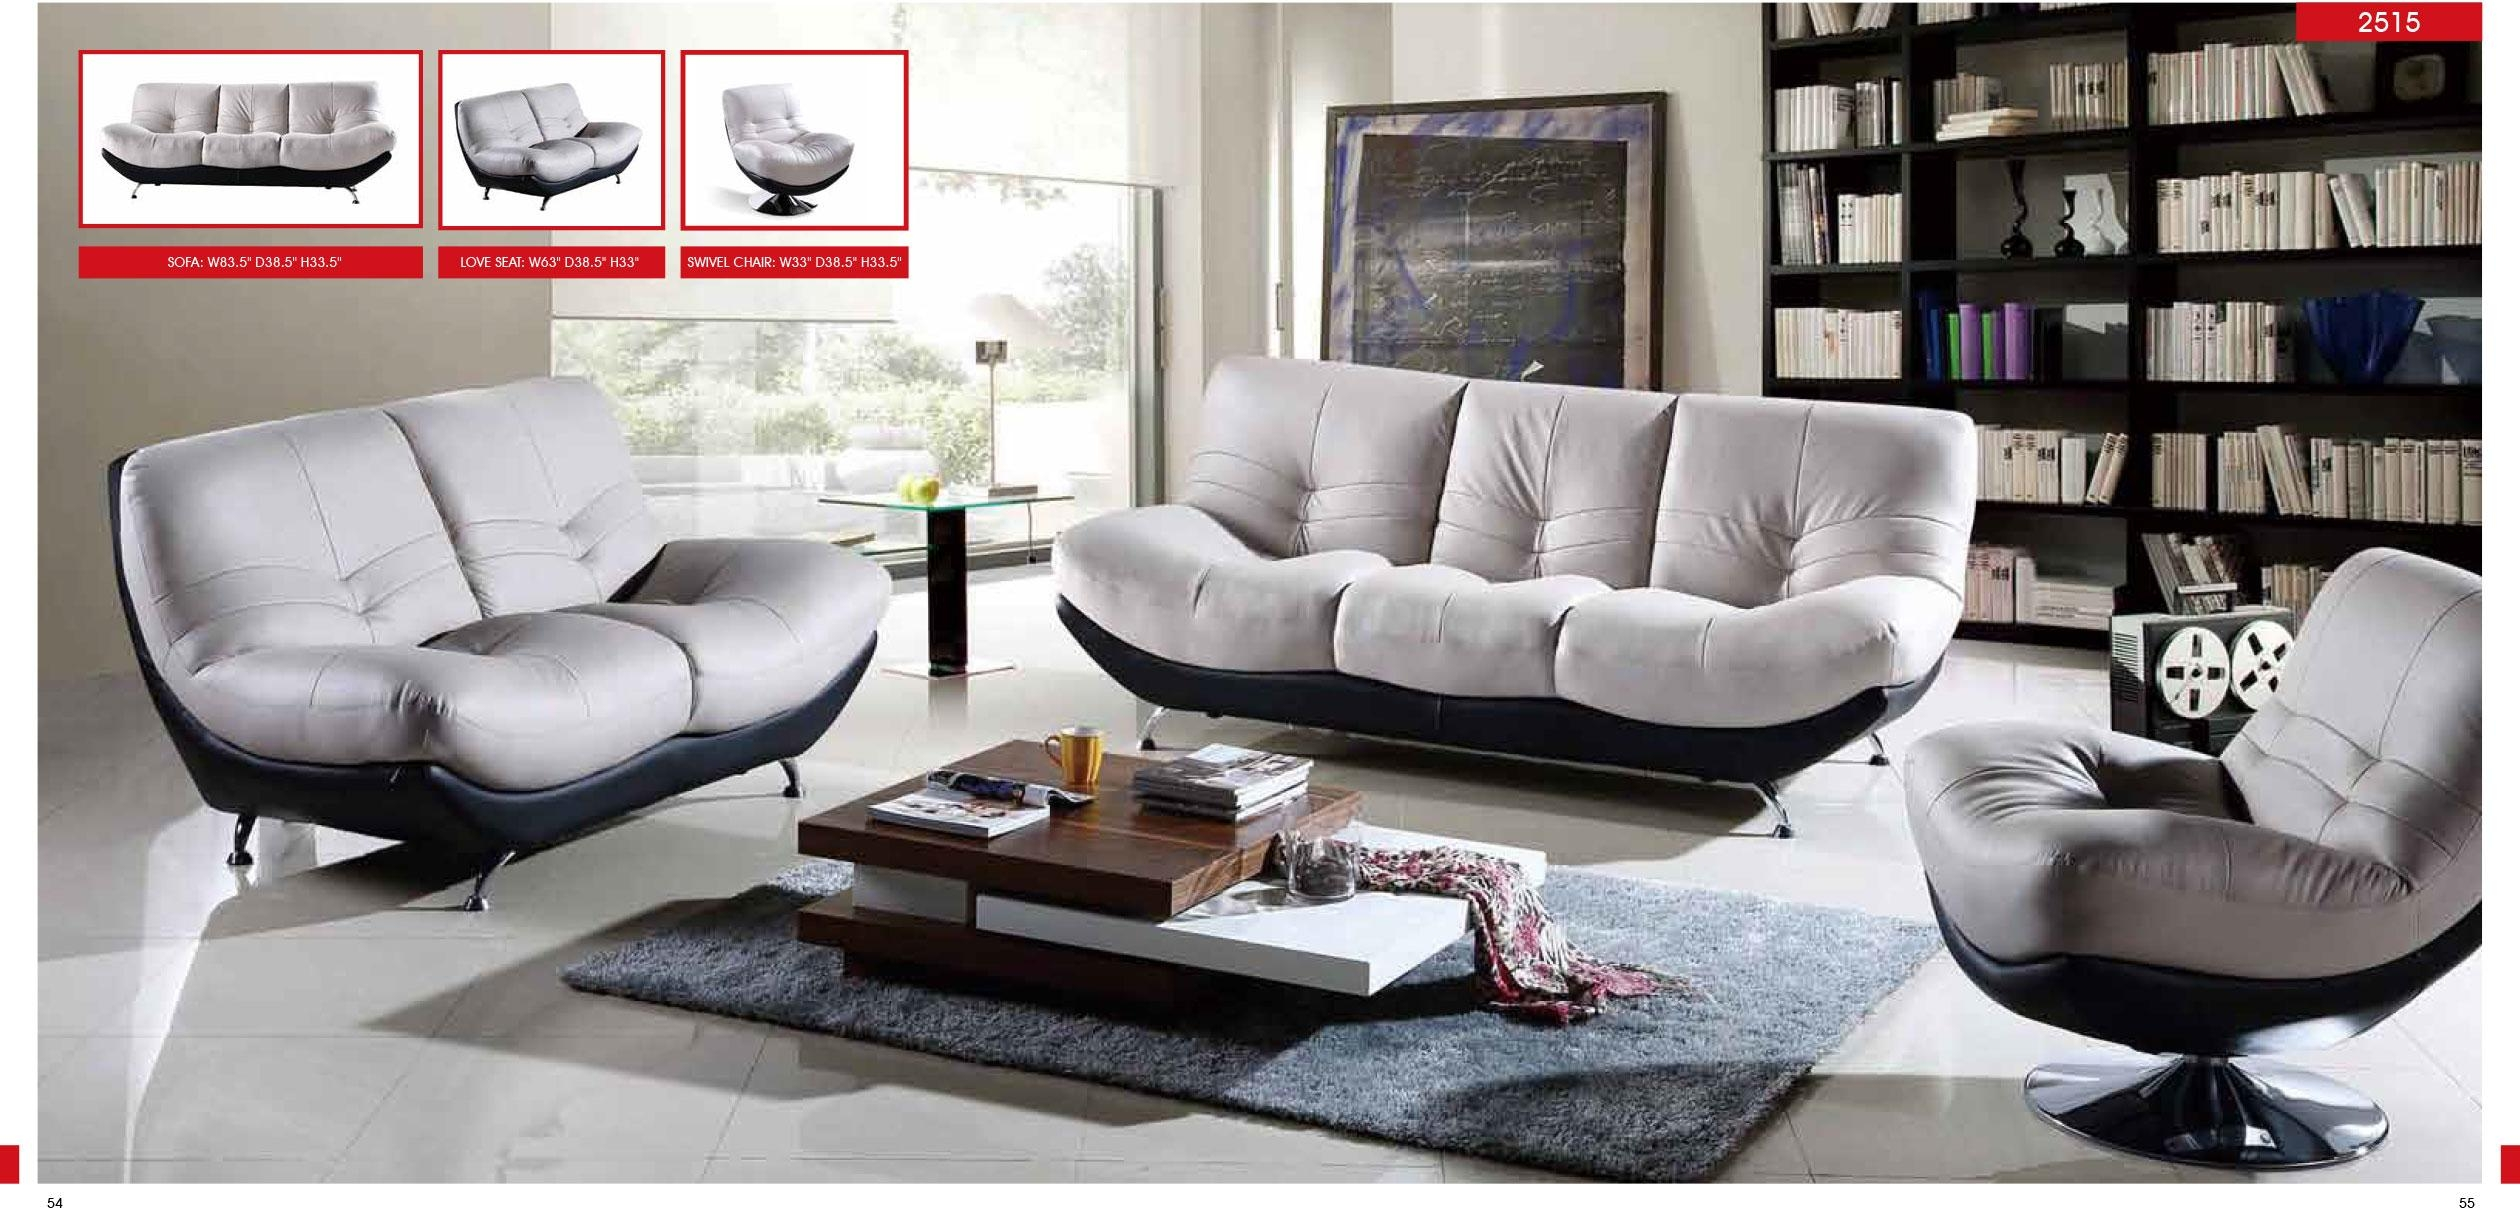 Extraordinary Living Room Furniture Sets Ideas – Underpriced Pertaining To Living Room Sofa Chairs (Image 6 of 20)